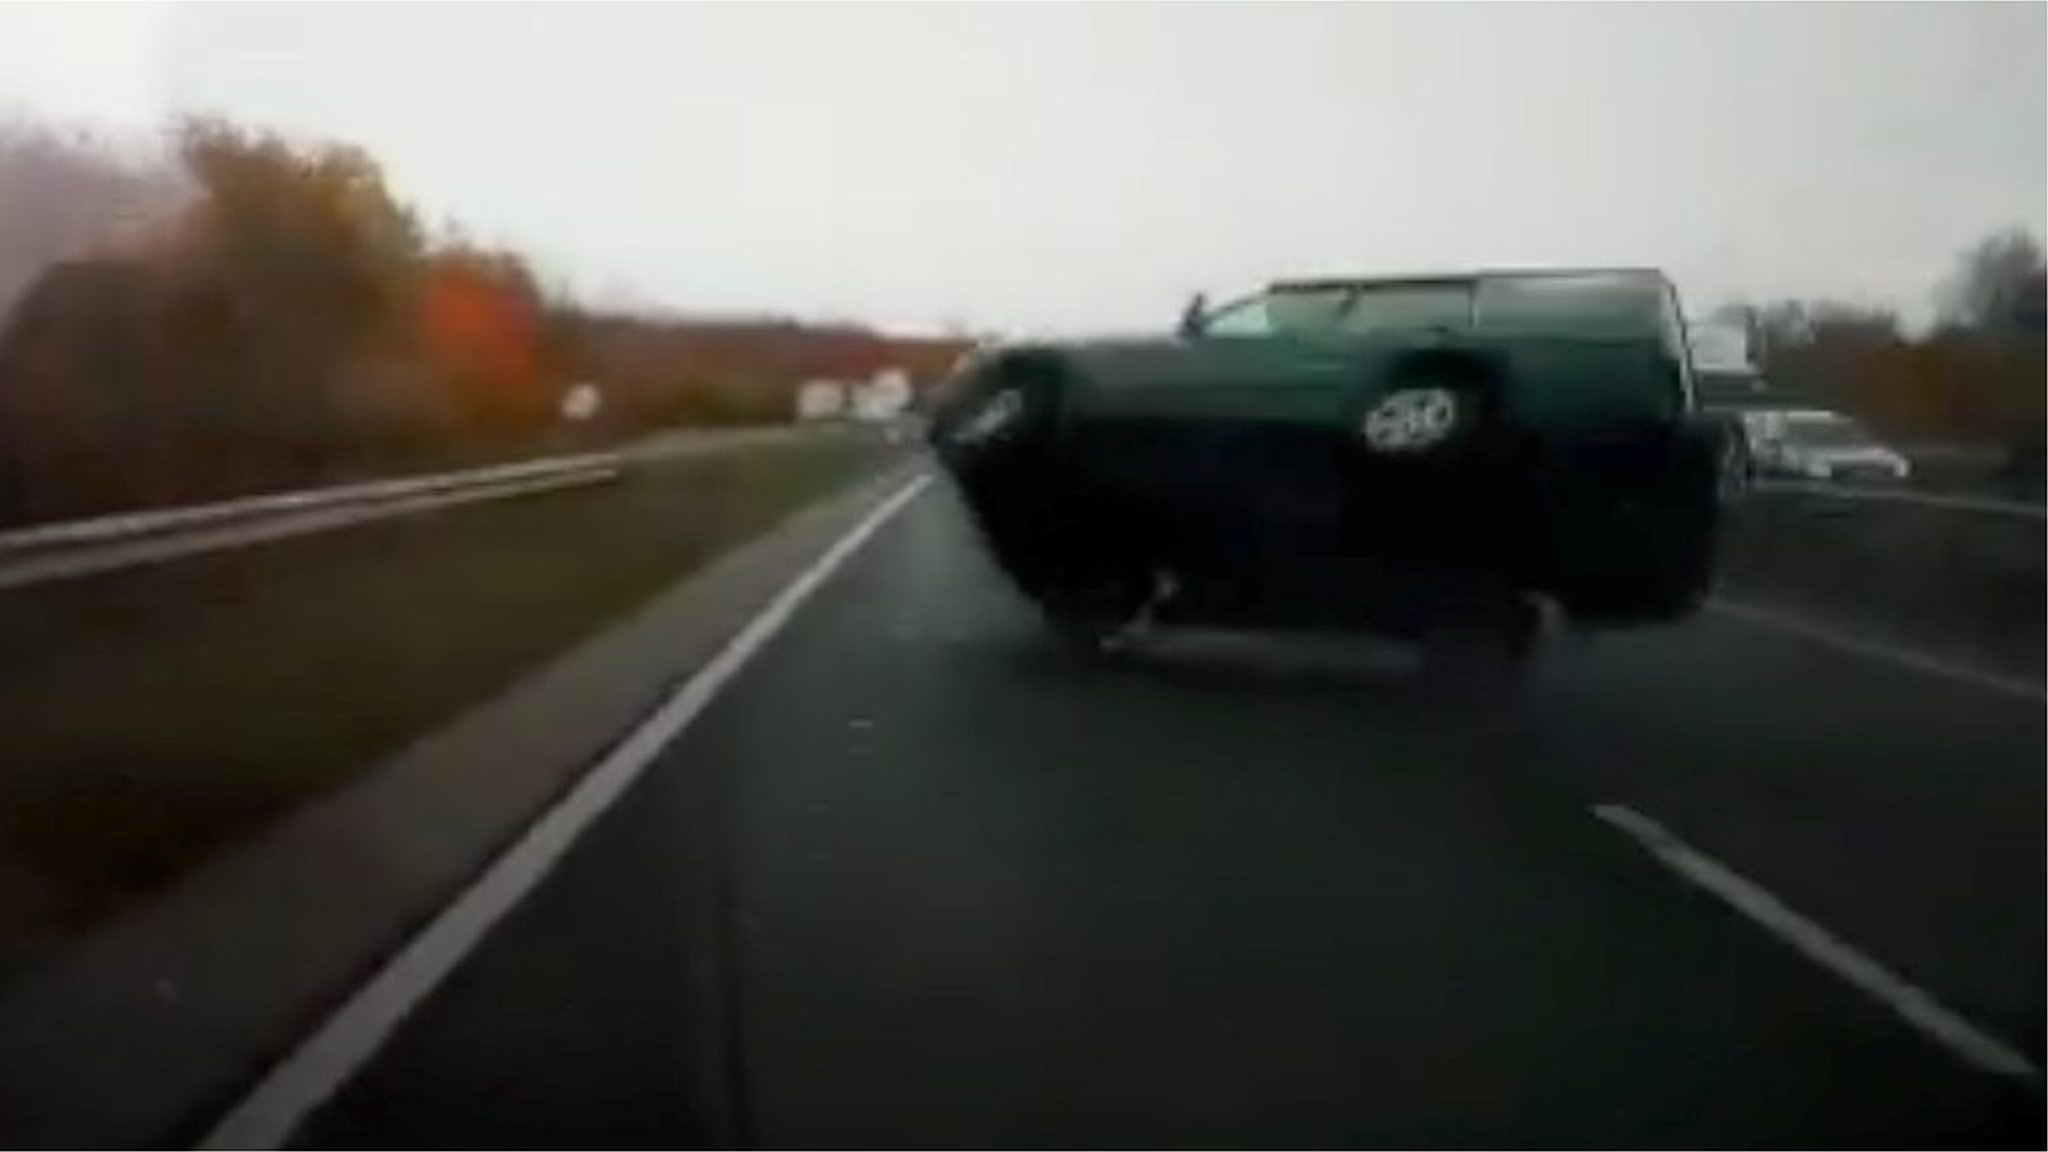 Dashcam shows car swerve and flip on A11 near Cambridge